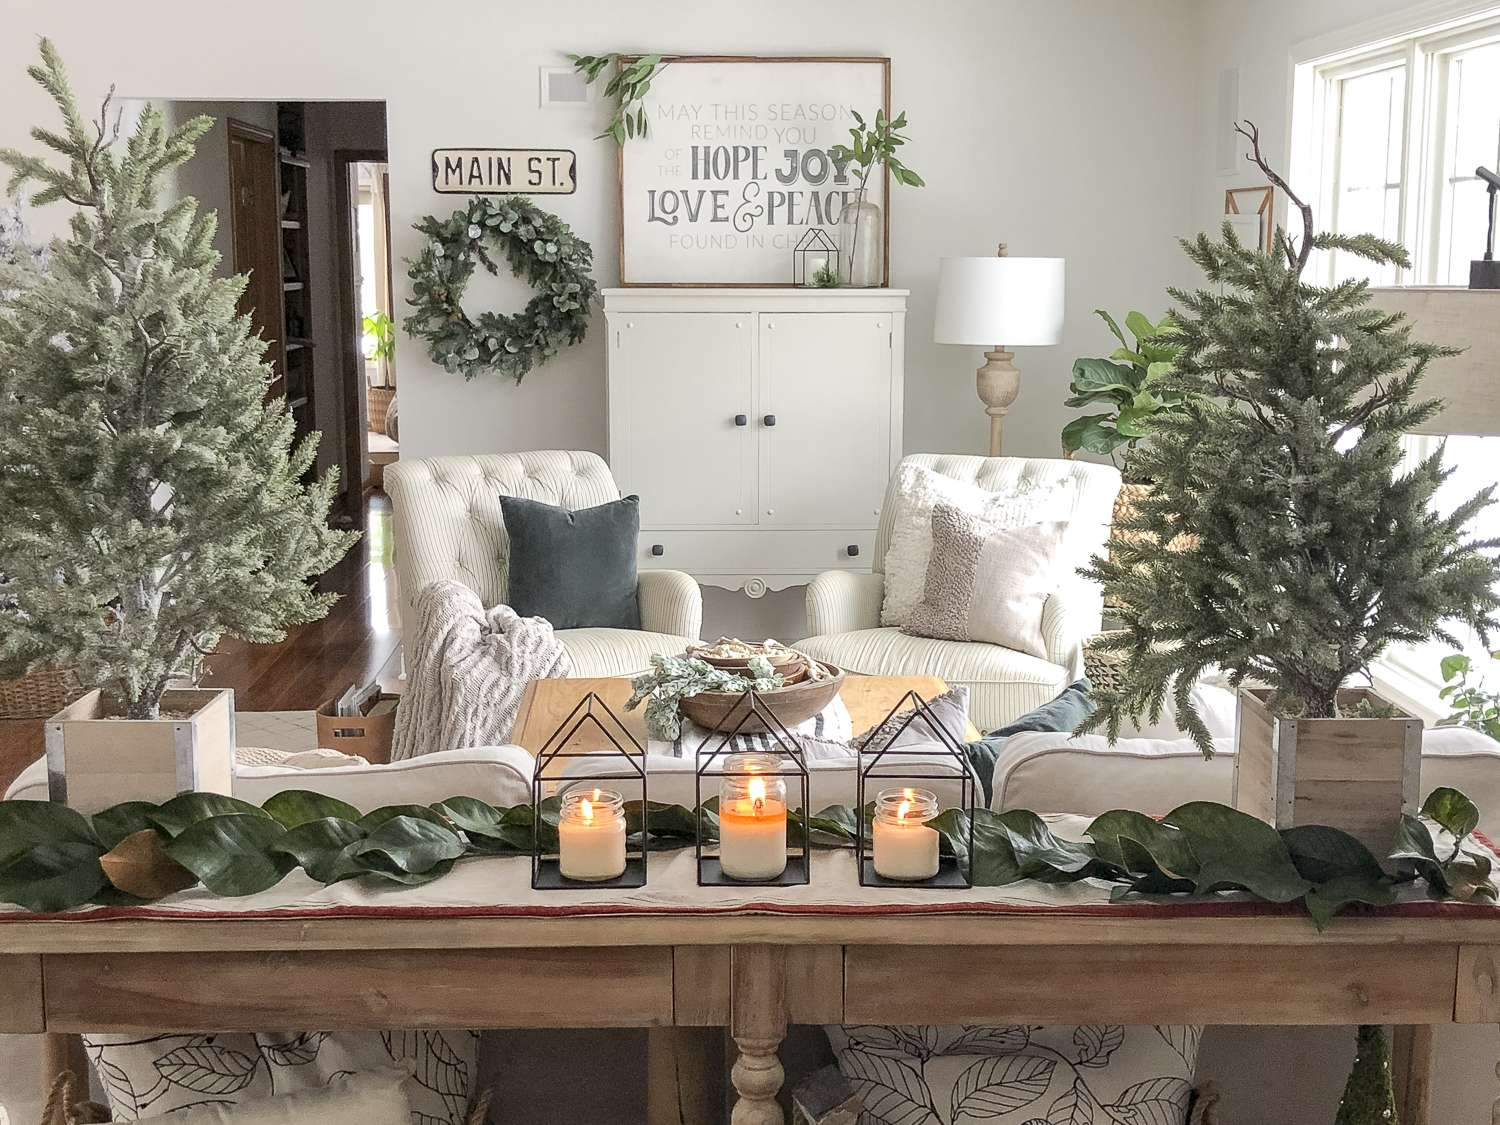 In a time of festivity and vibrant colors I crave neutral simplicity. Join me on my Simple & Neutral Modern Farmhouse Christmas home tour! #modernfarmhouse #christmasdecorations #neutralchristmasdecor #fromhousetohaven